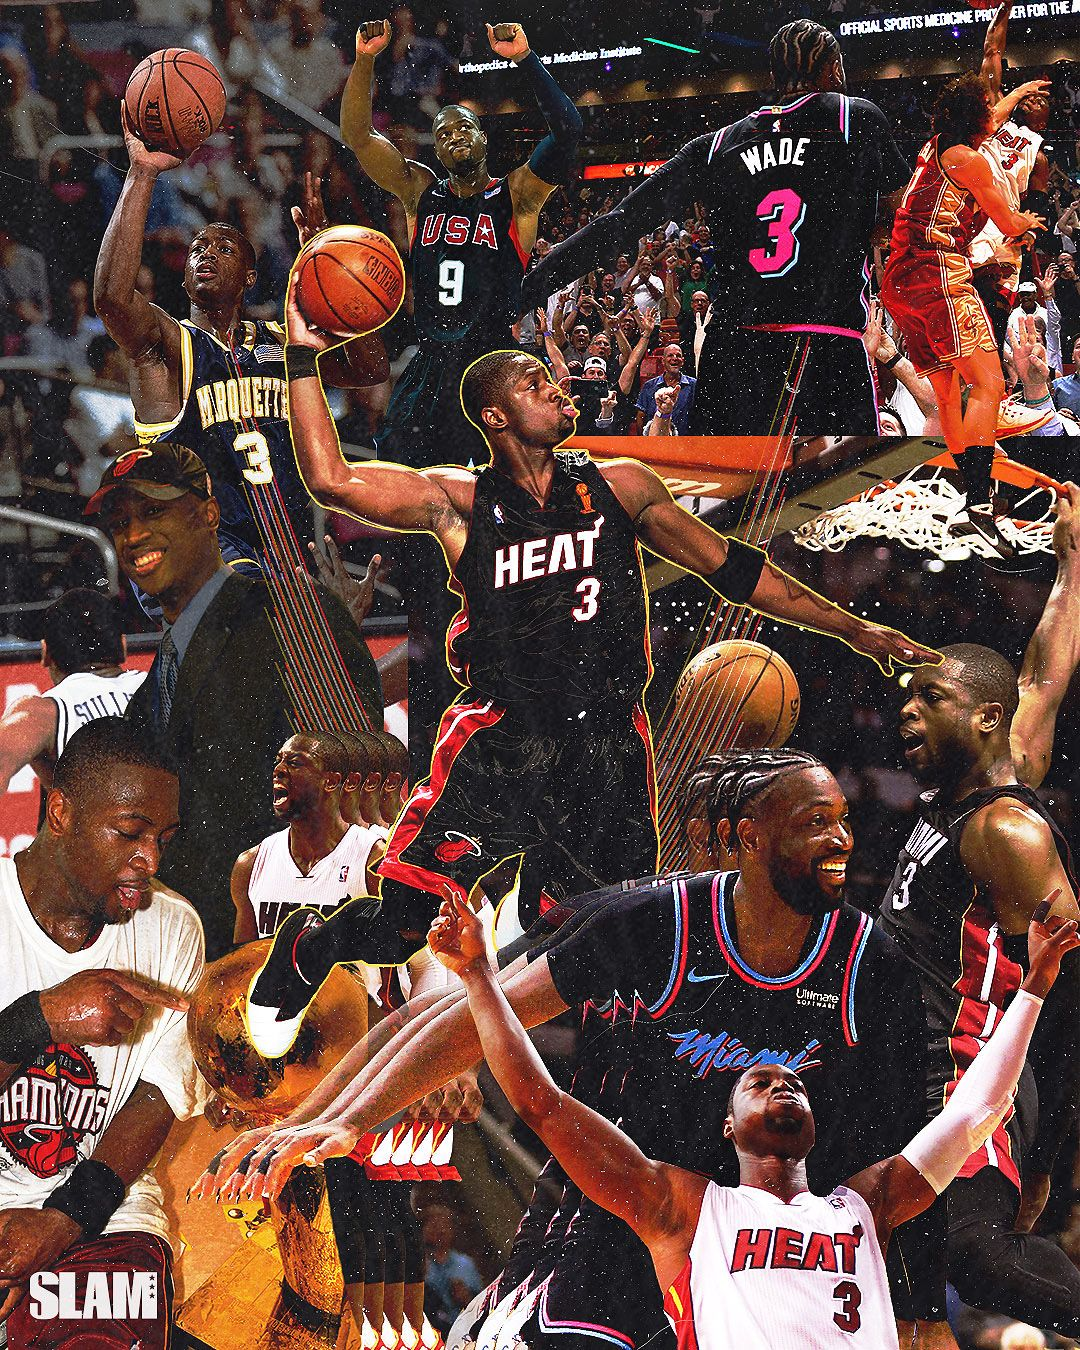 Dwyane Wade Career Collage On Behance In 2020 Dwyane Wade Nba Basketball Art Basketball Players Nba